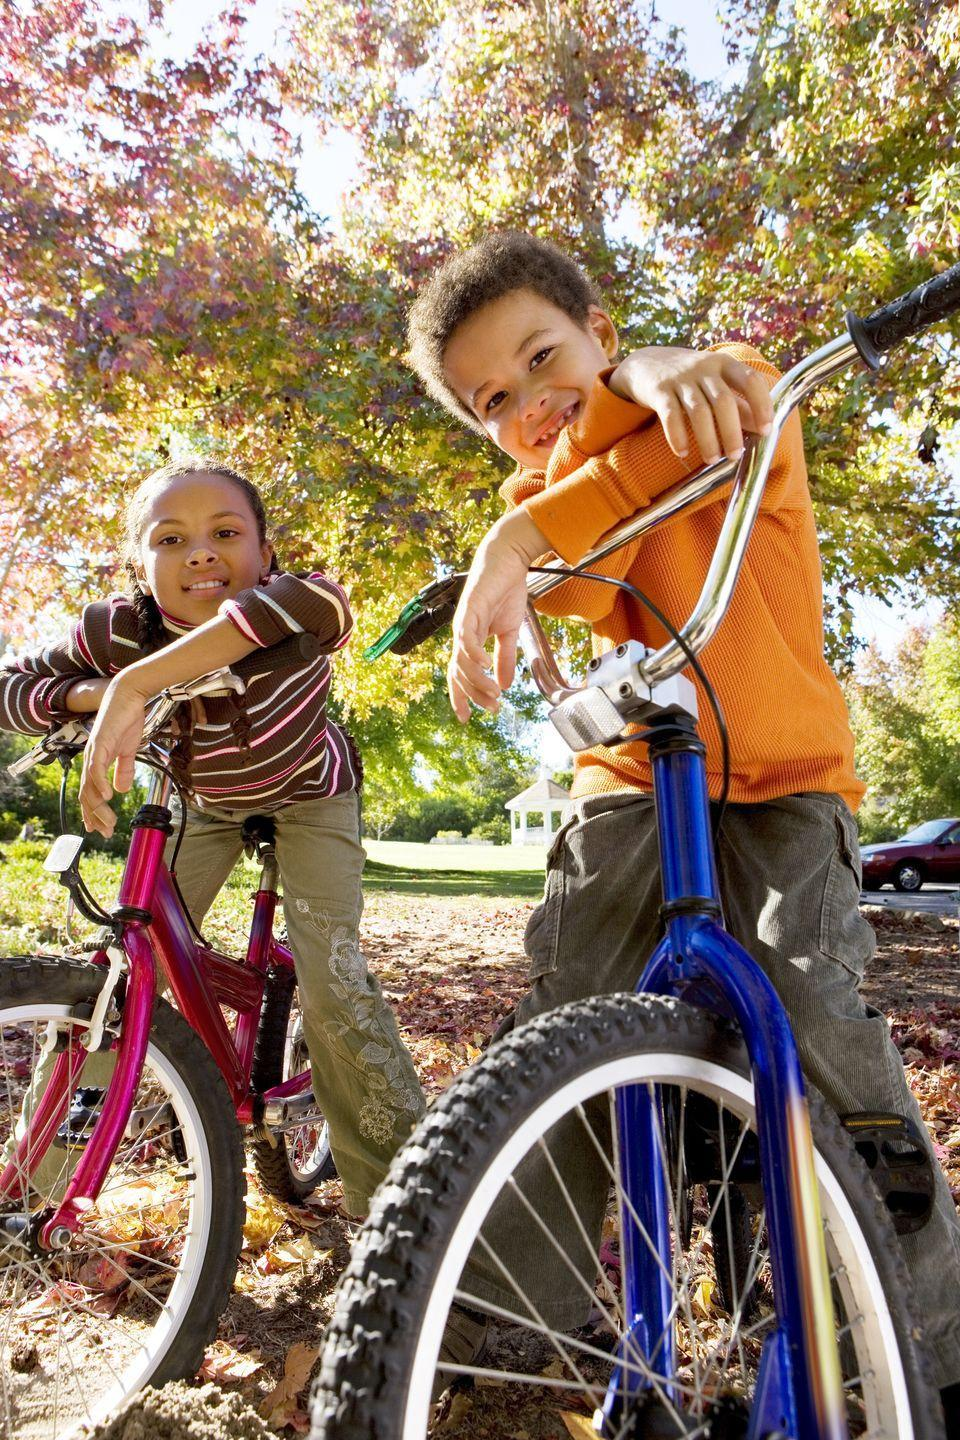 <p>Go ahead, enjoy the fresh air! Break out your bicycles and take a spin around the block to look for the prettiest leaves and trees. It's a great way to get moving before you get eating. </p>